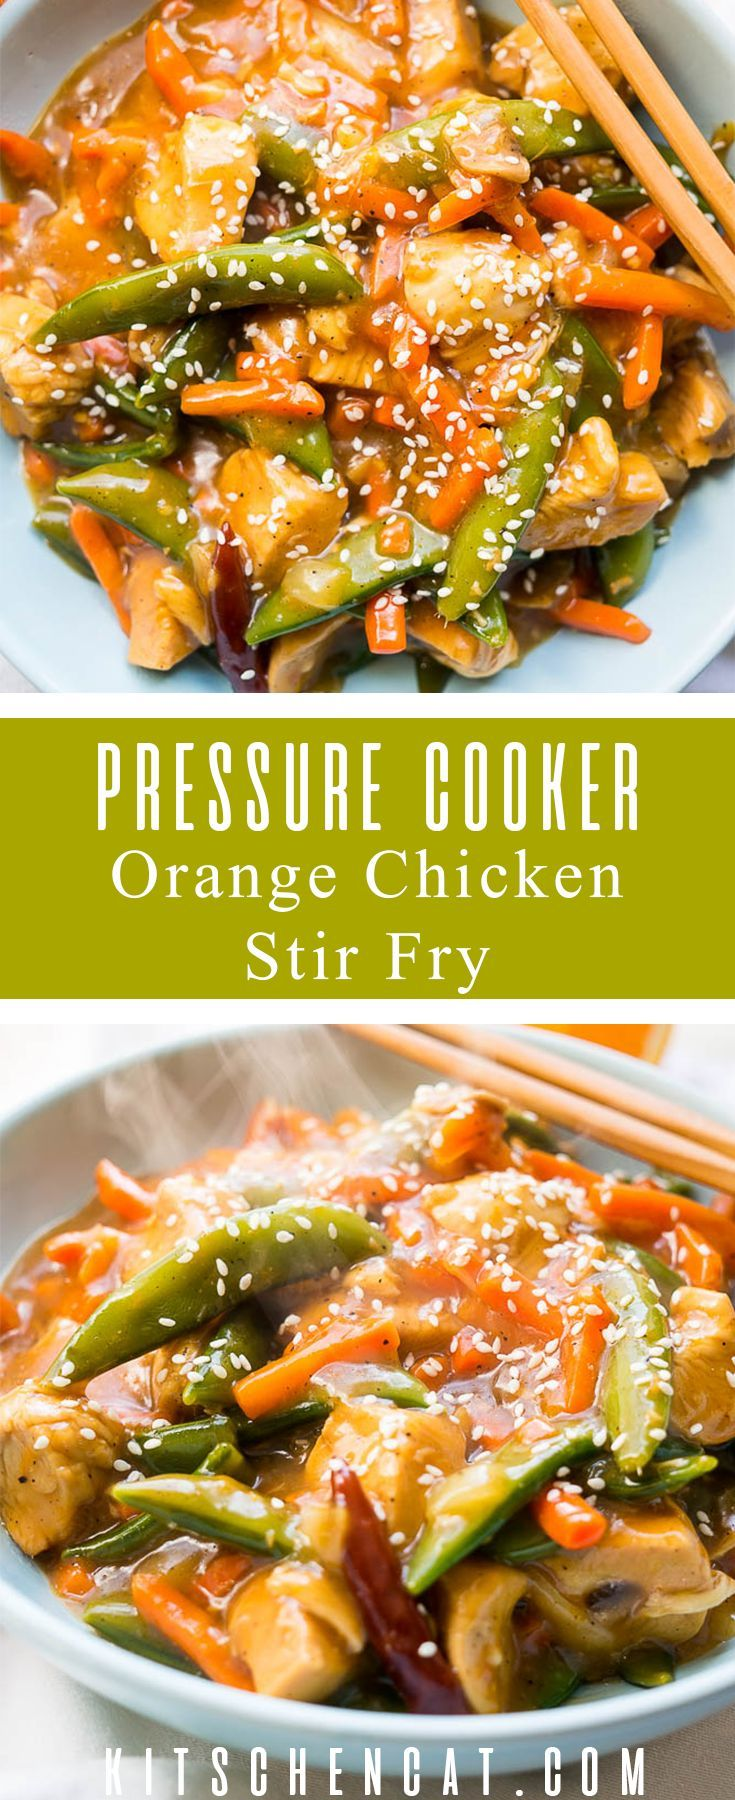 Pressure Cooker Orange Chicken Stir Fry is better than take out and has a REAL orange flavor from fresh oj and grated zest.